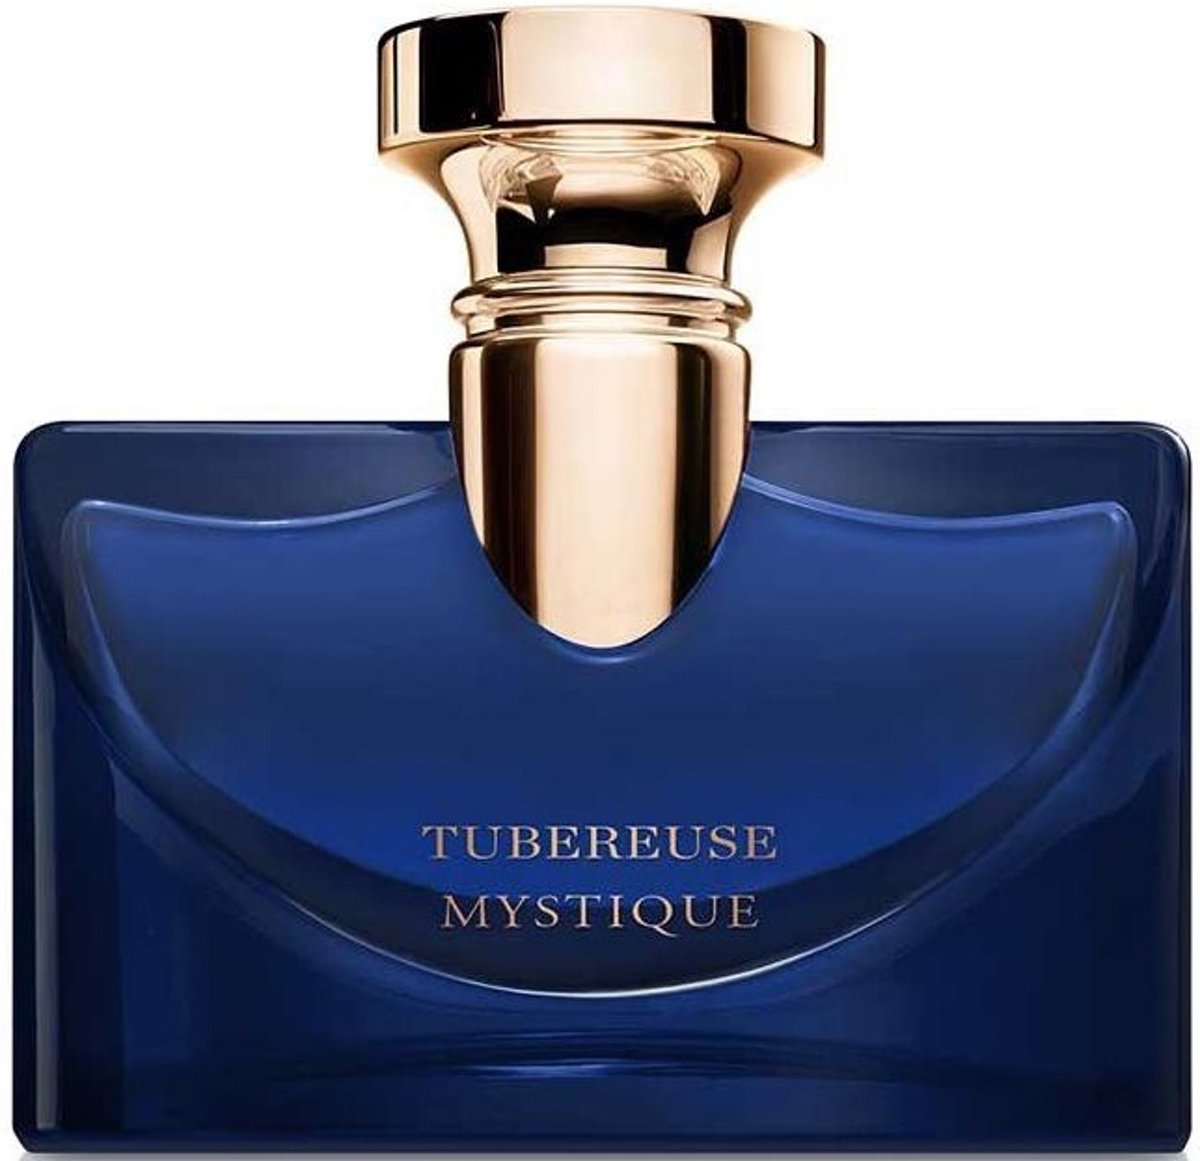 Bvlgari Splendida Tubereus Mystique Eau de parfum spray 50 ml